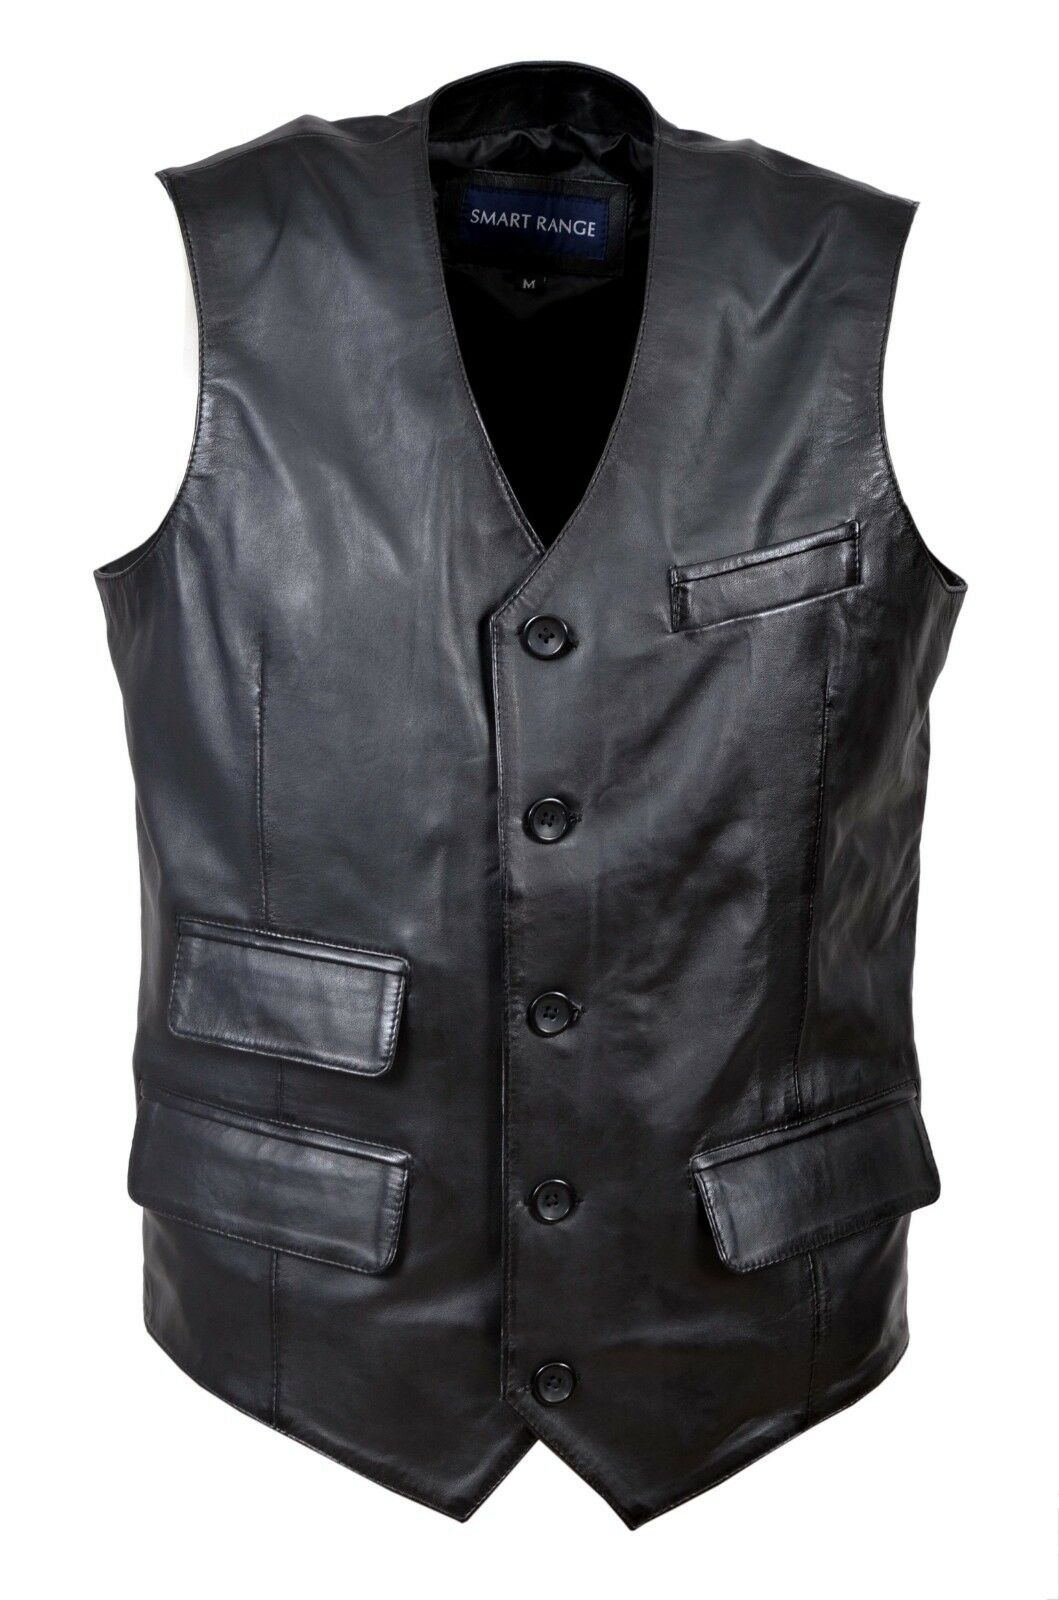 NEW DELUXE BLACK WAISTCOAT REAL LEATHER BLACKLIST PARTY CASUAL FASHION VEST LARP